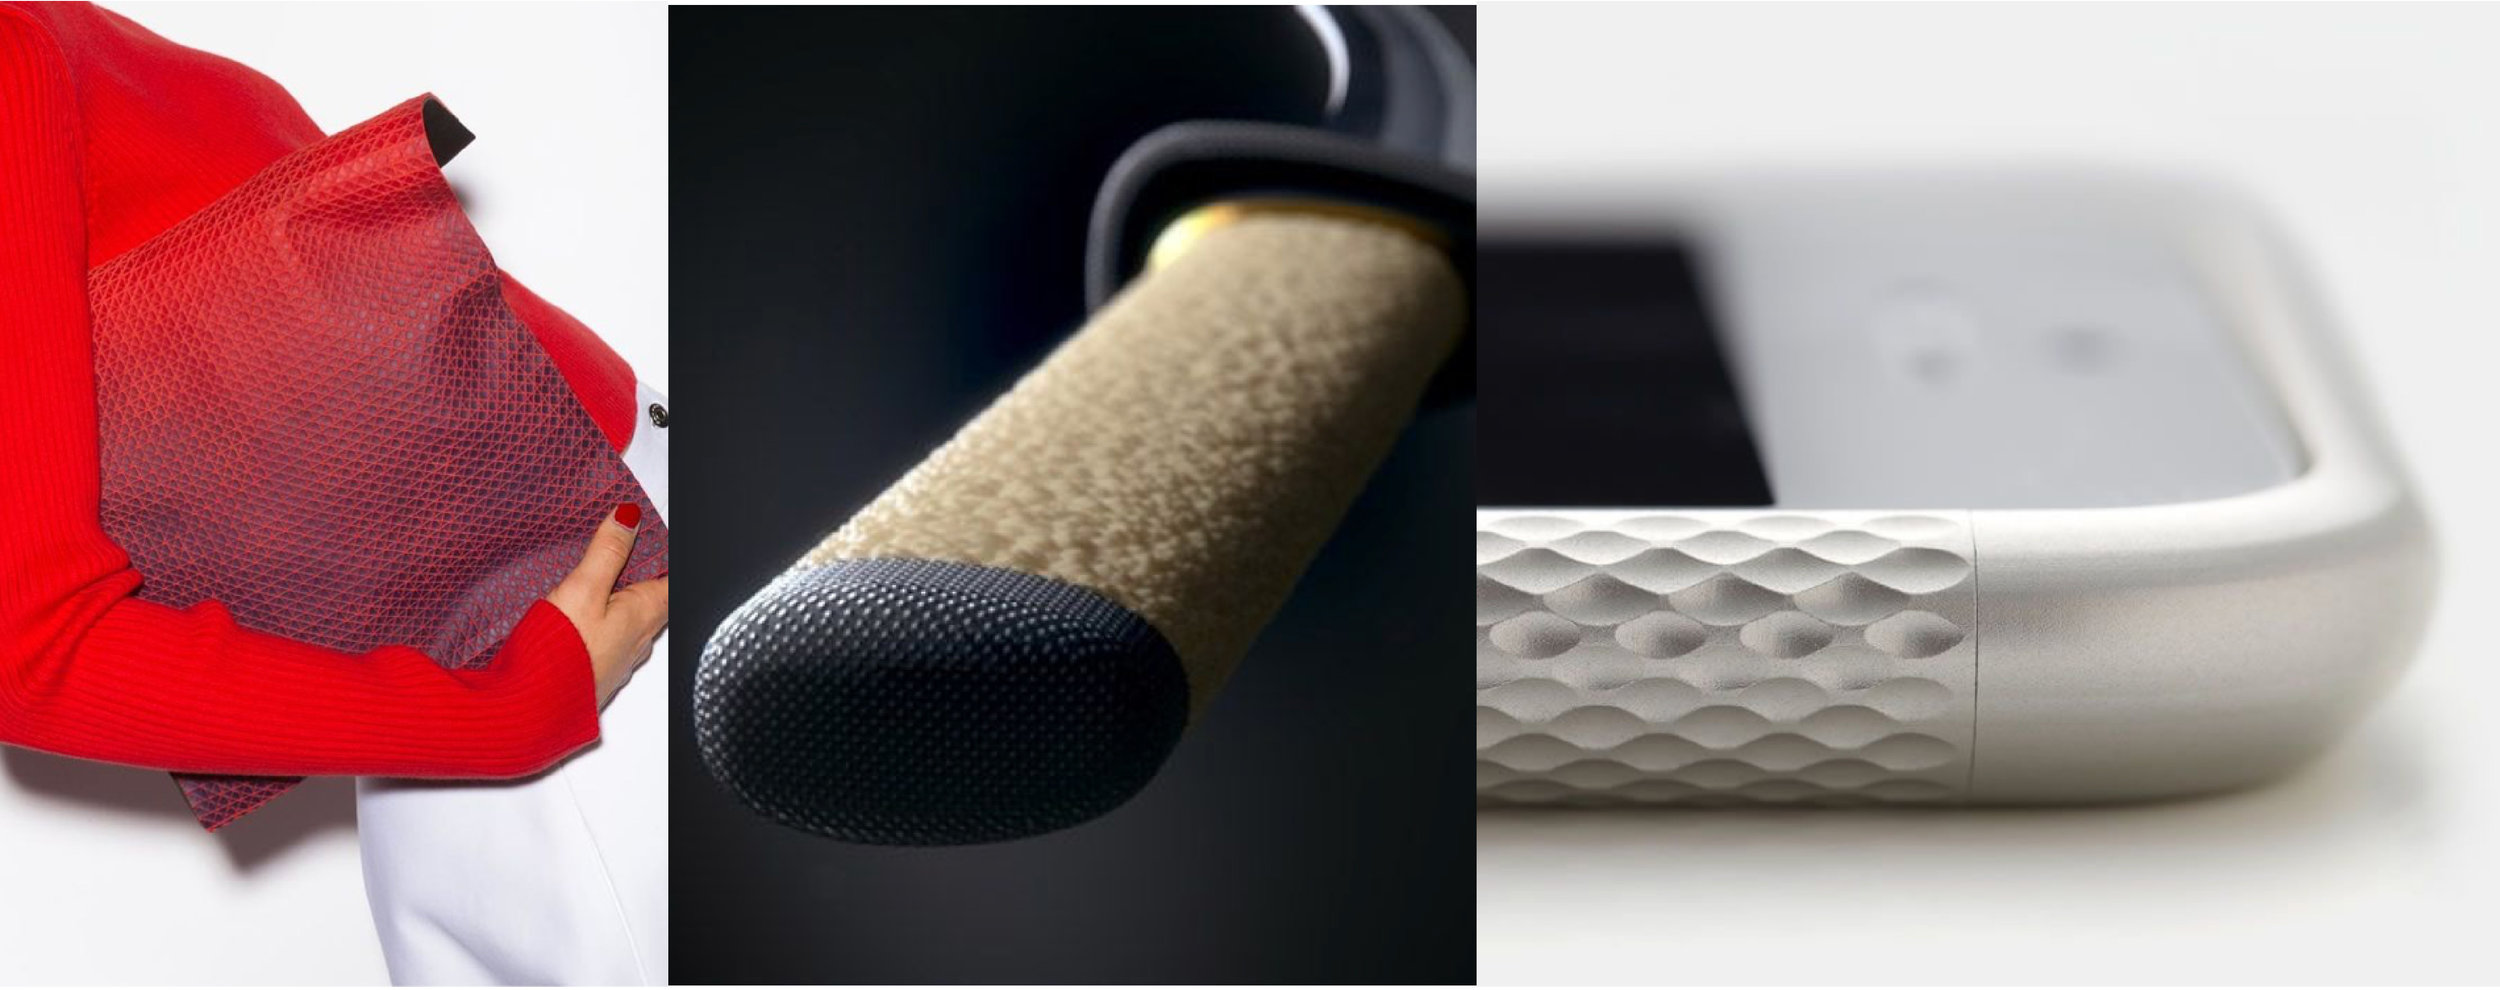 Micro Surface - Inspiration for the development of a unique texture to provide a high-performance surface for the saddle cover materials.